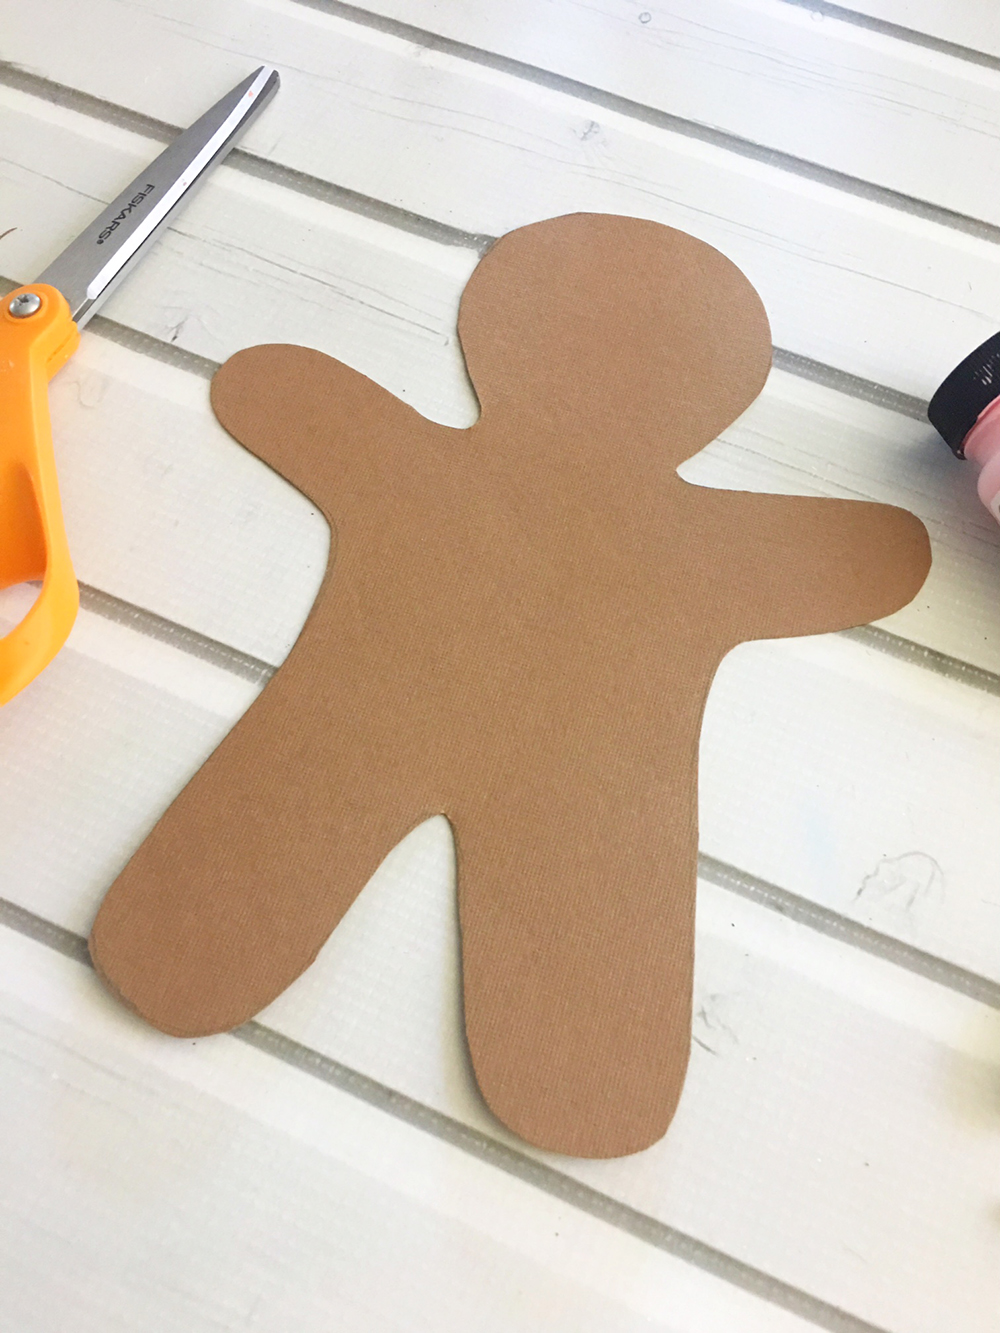 DIY Gingerbread Man Ornaments are an easy and fun holiday activity that will keep the little ones busy for hours! Use as tree ornamnets, gift tags or holiday dinner placecards-draw gingerbread man on brown card stock paper and cut with scissors.